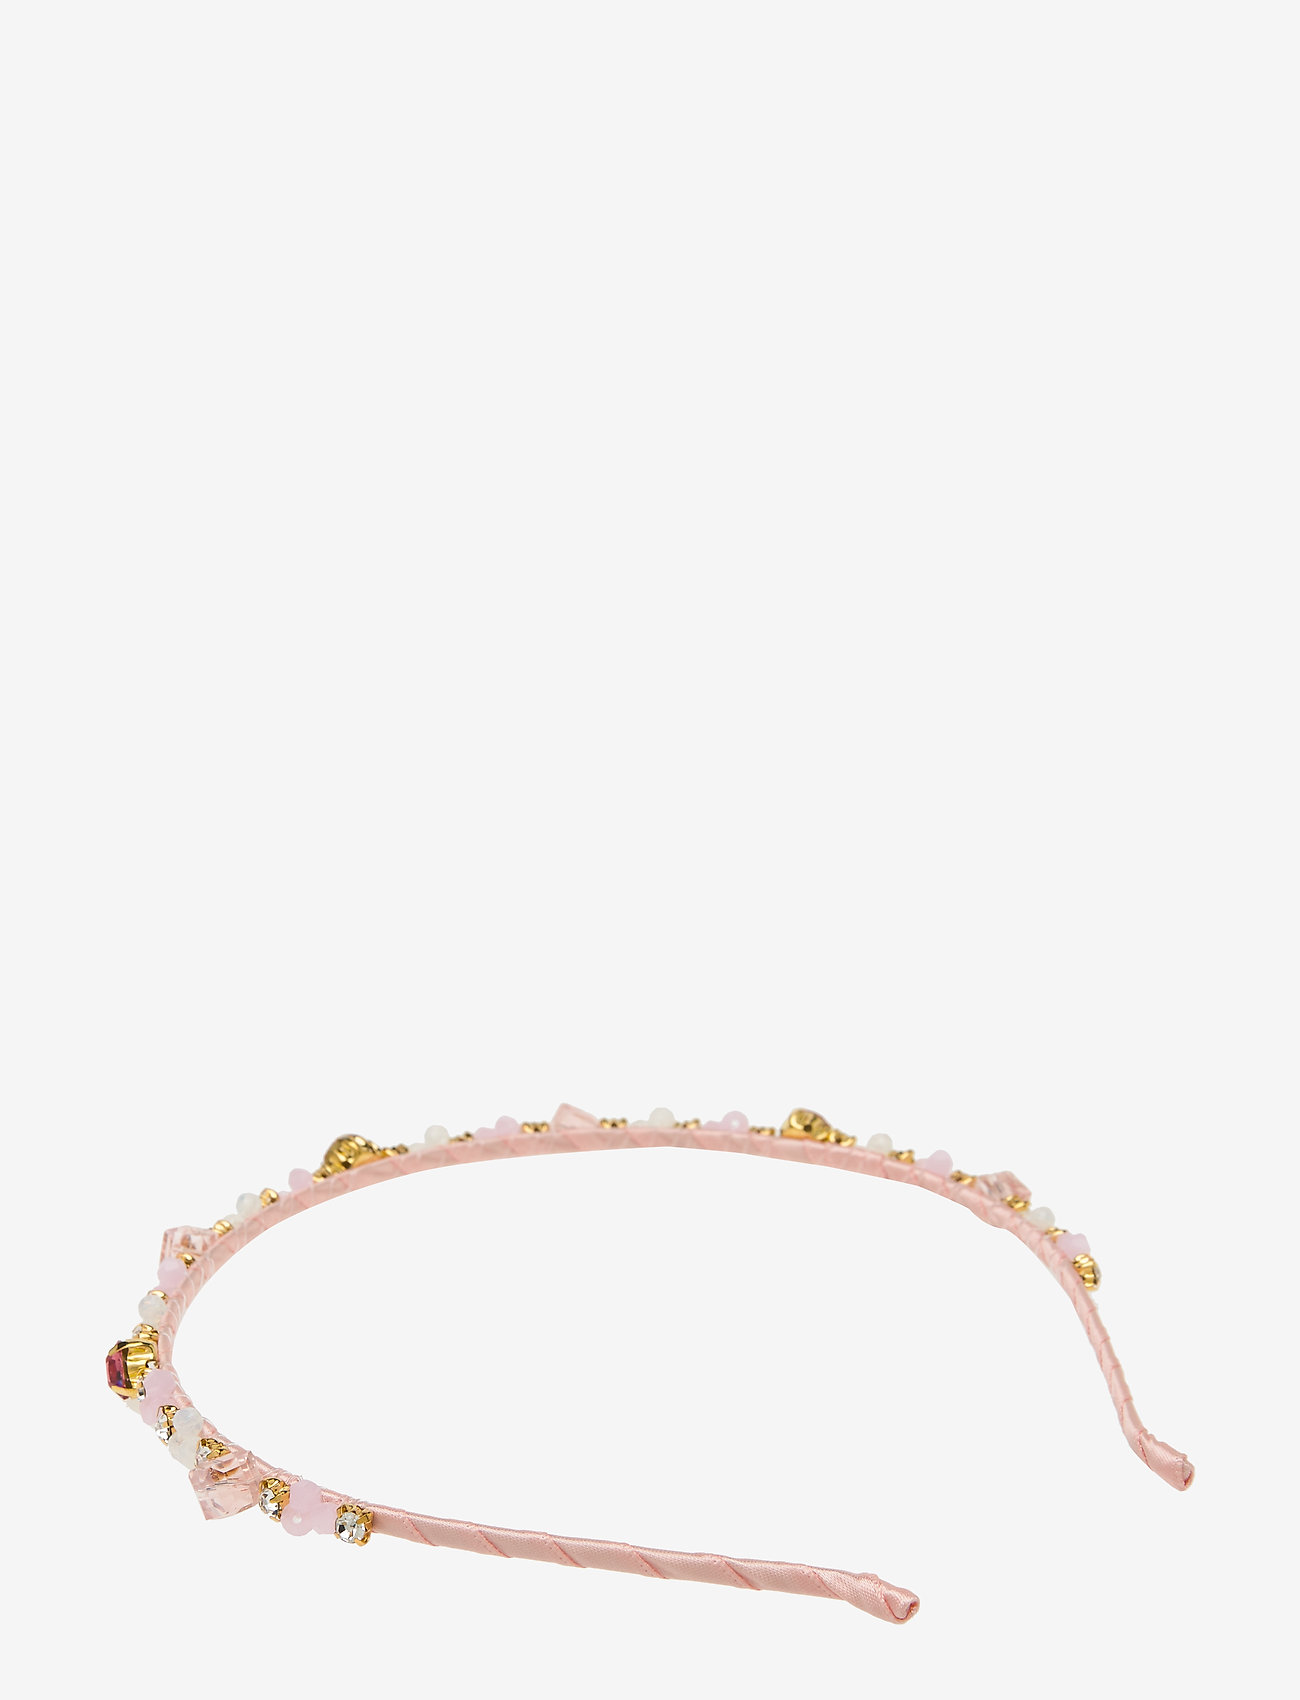 PIPOL'S BAZAAR - Missy Embroidered PIPOL Diadema Pink - hair accessories - pink